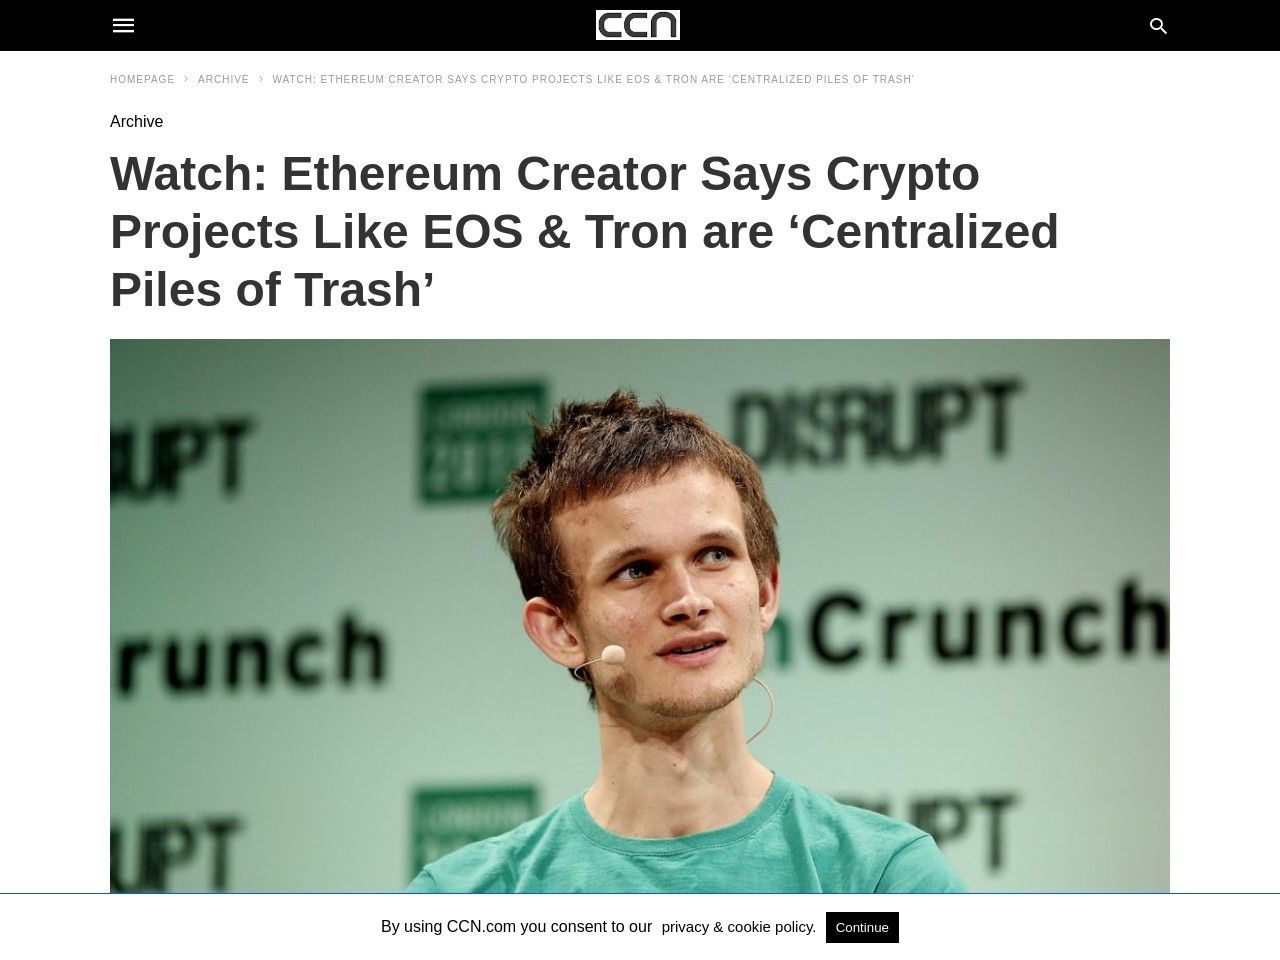 Watch: Ethereum Creator Says Crypto Projects Like EOS & Tron are 'Centralized Piles of Trash'